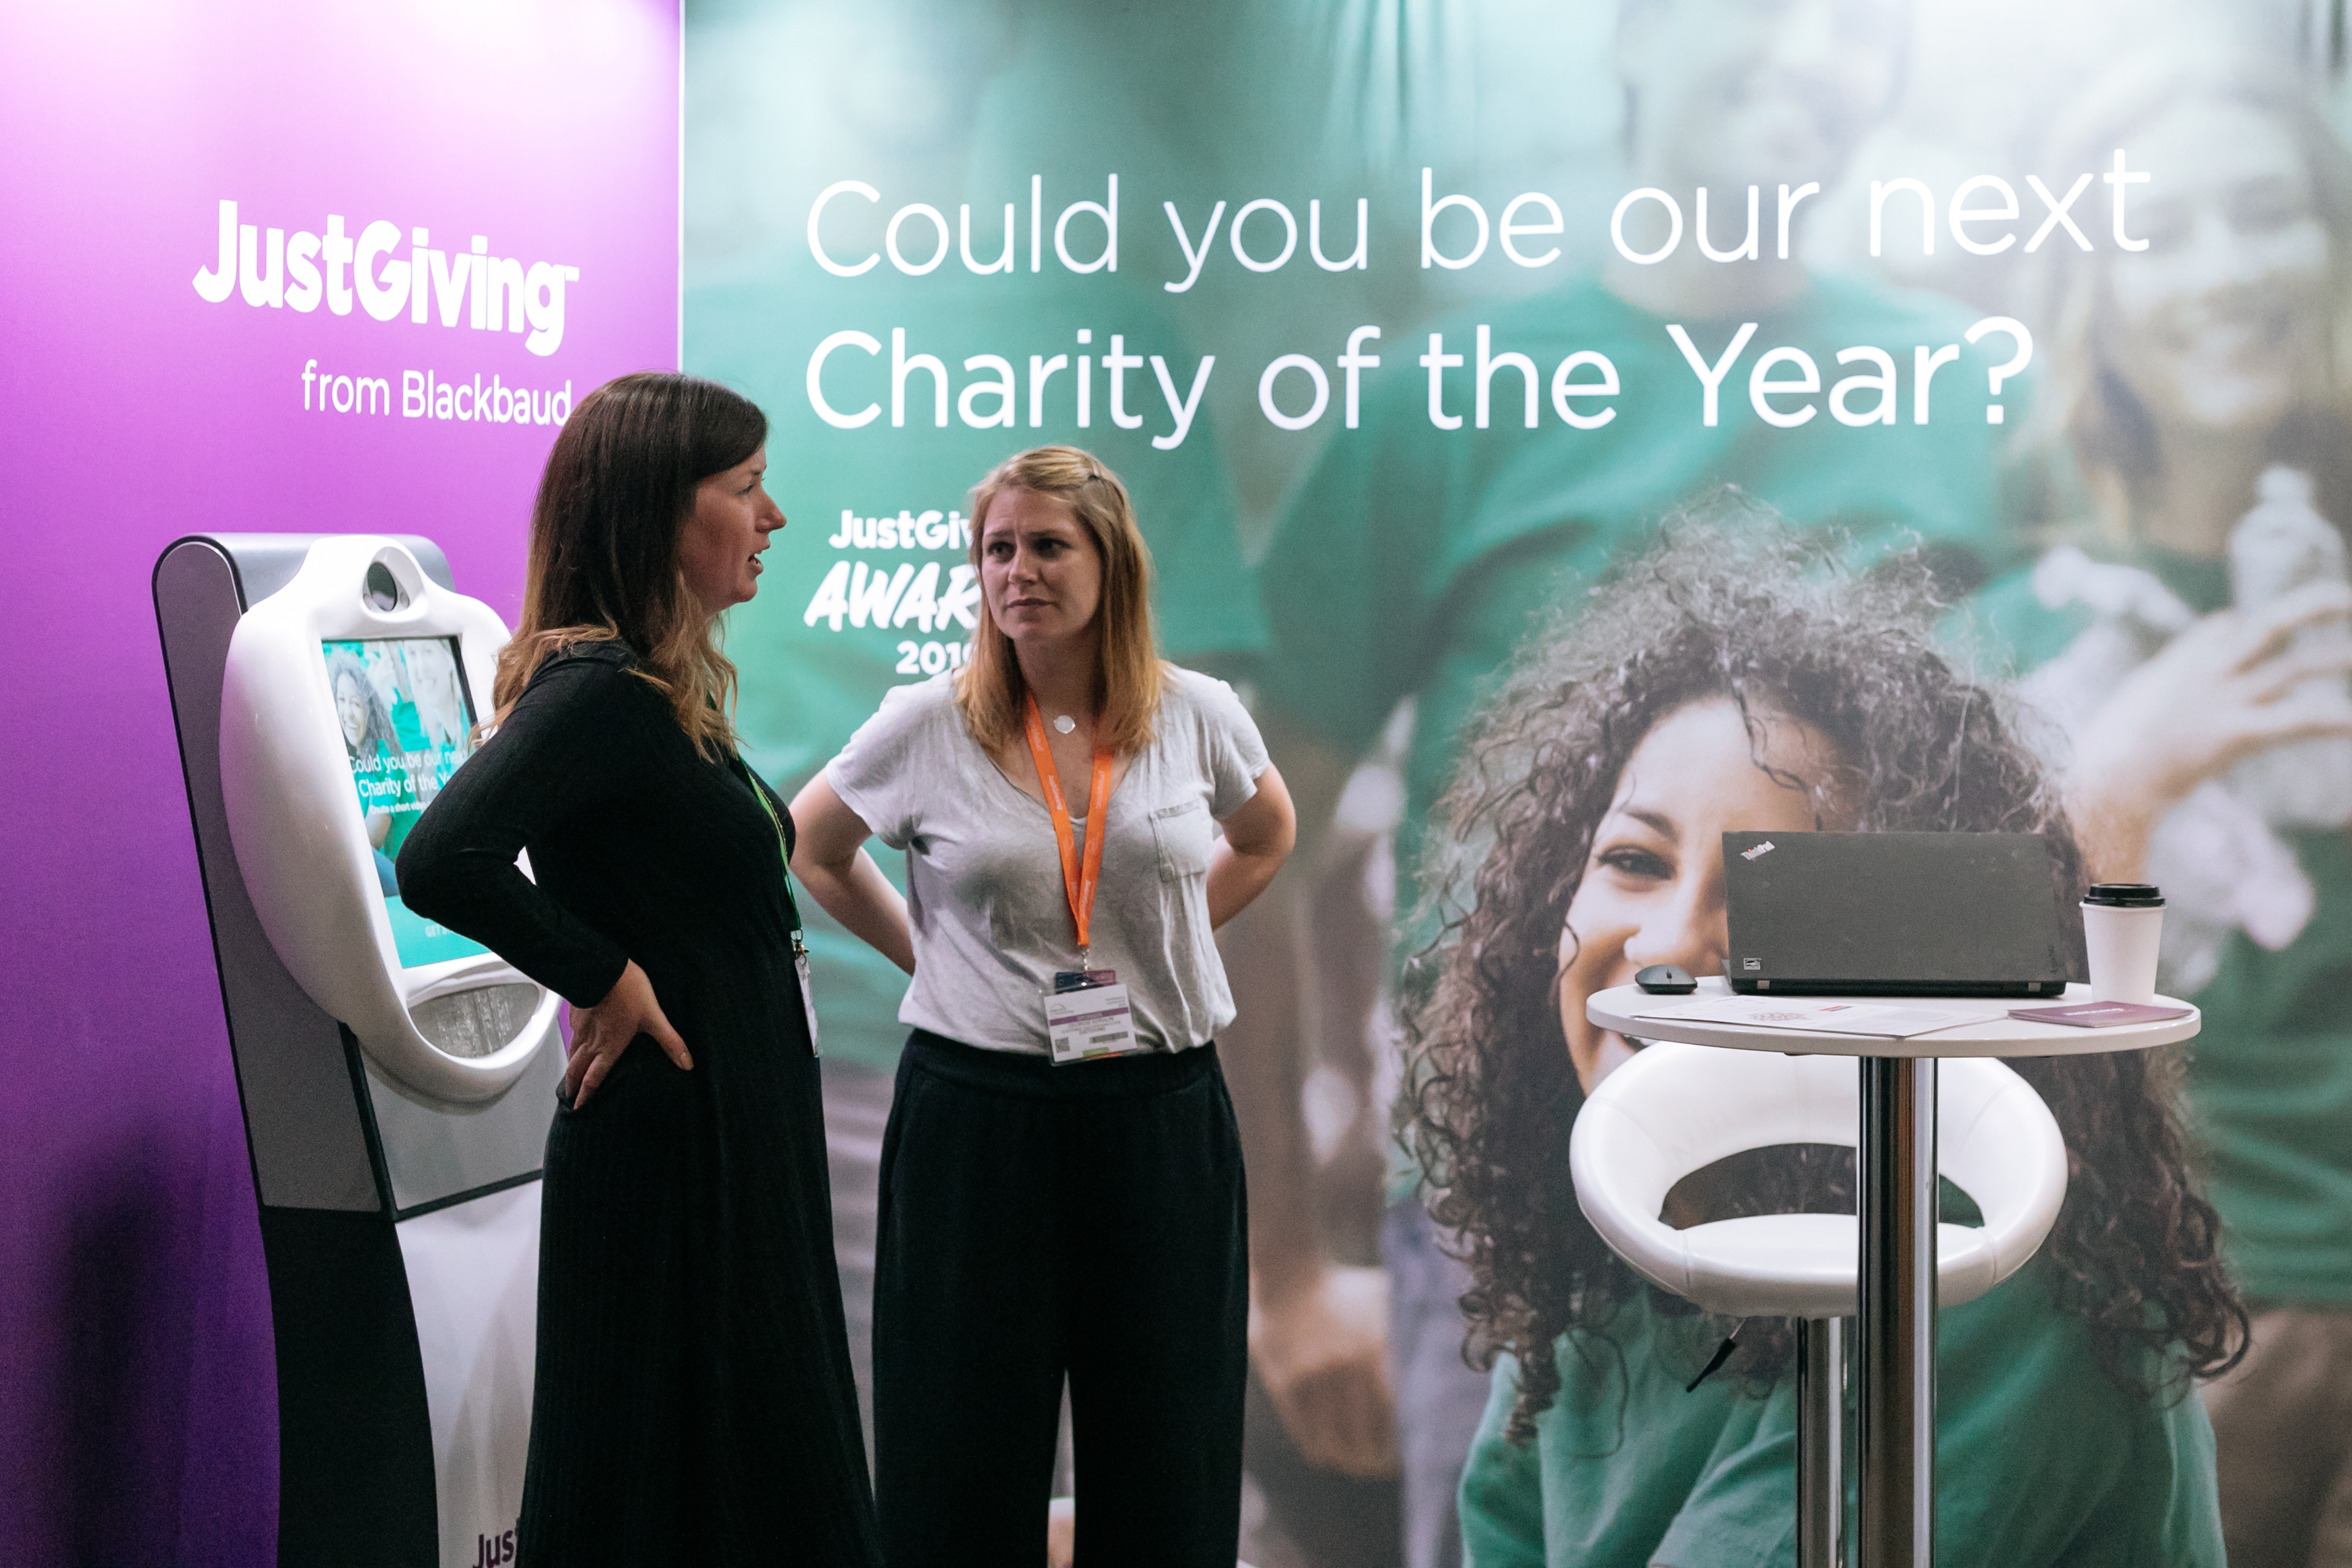 JustGiving exhibition stand with two people standing in front of the banners talking with hands behind their backs.